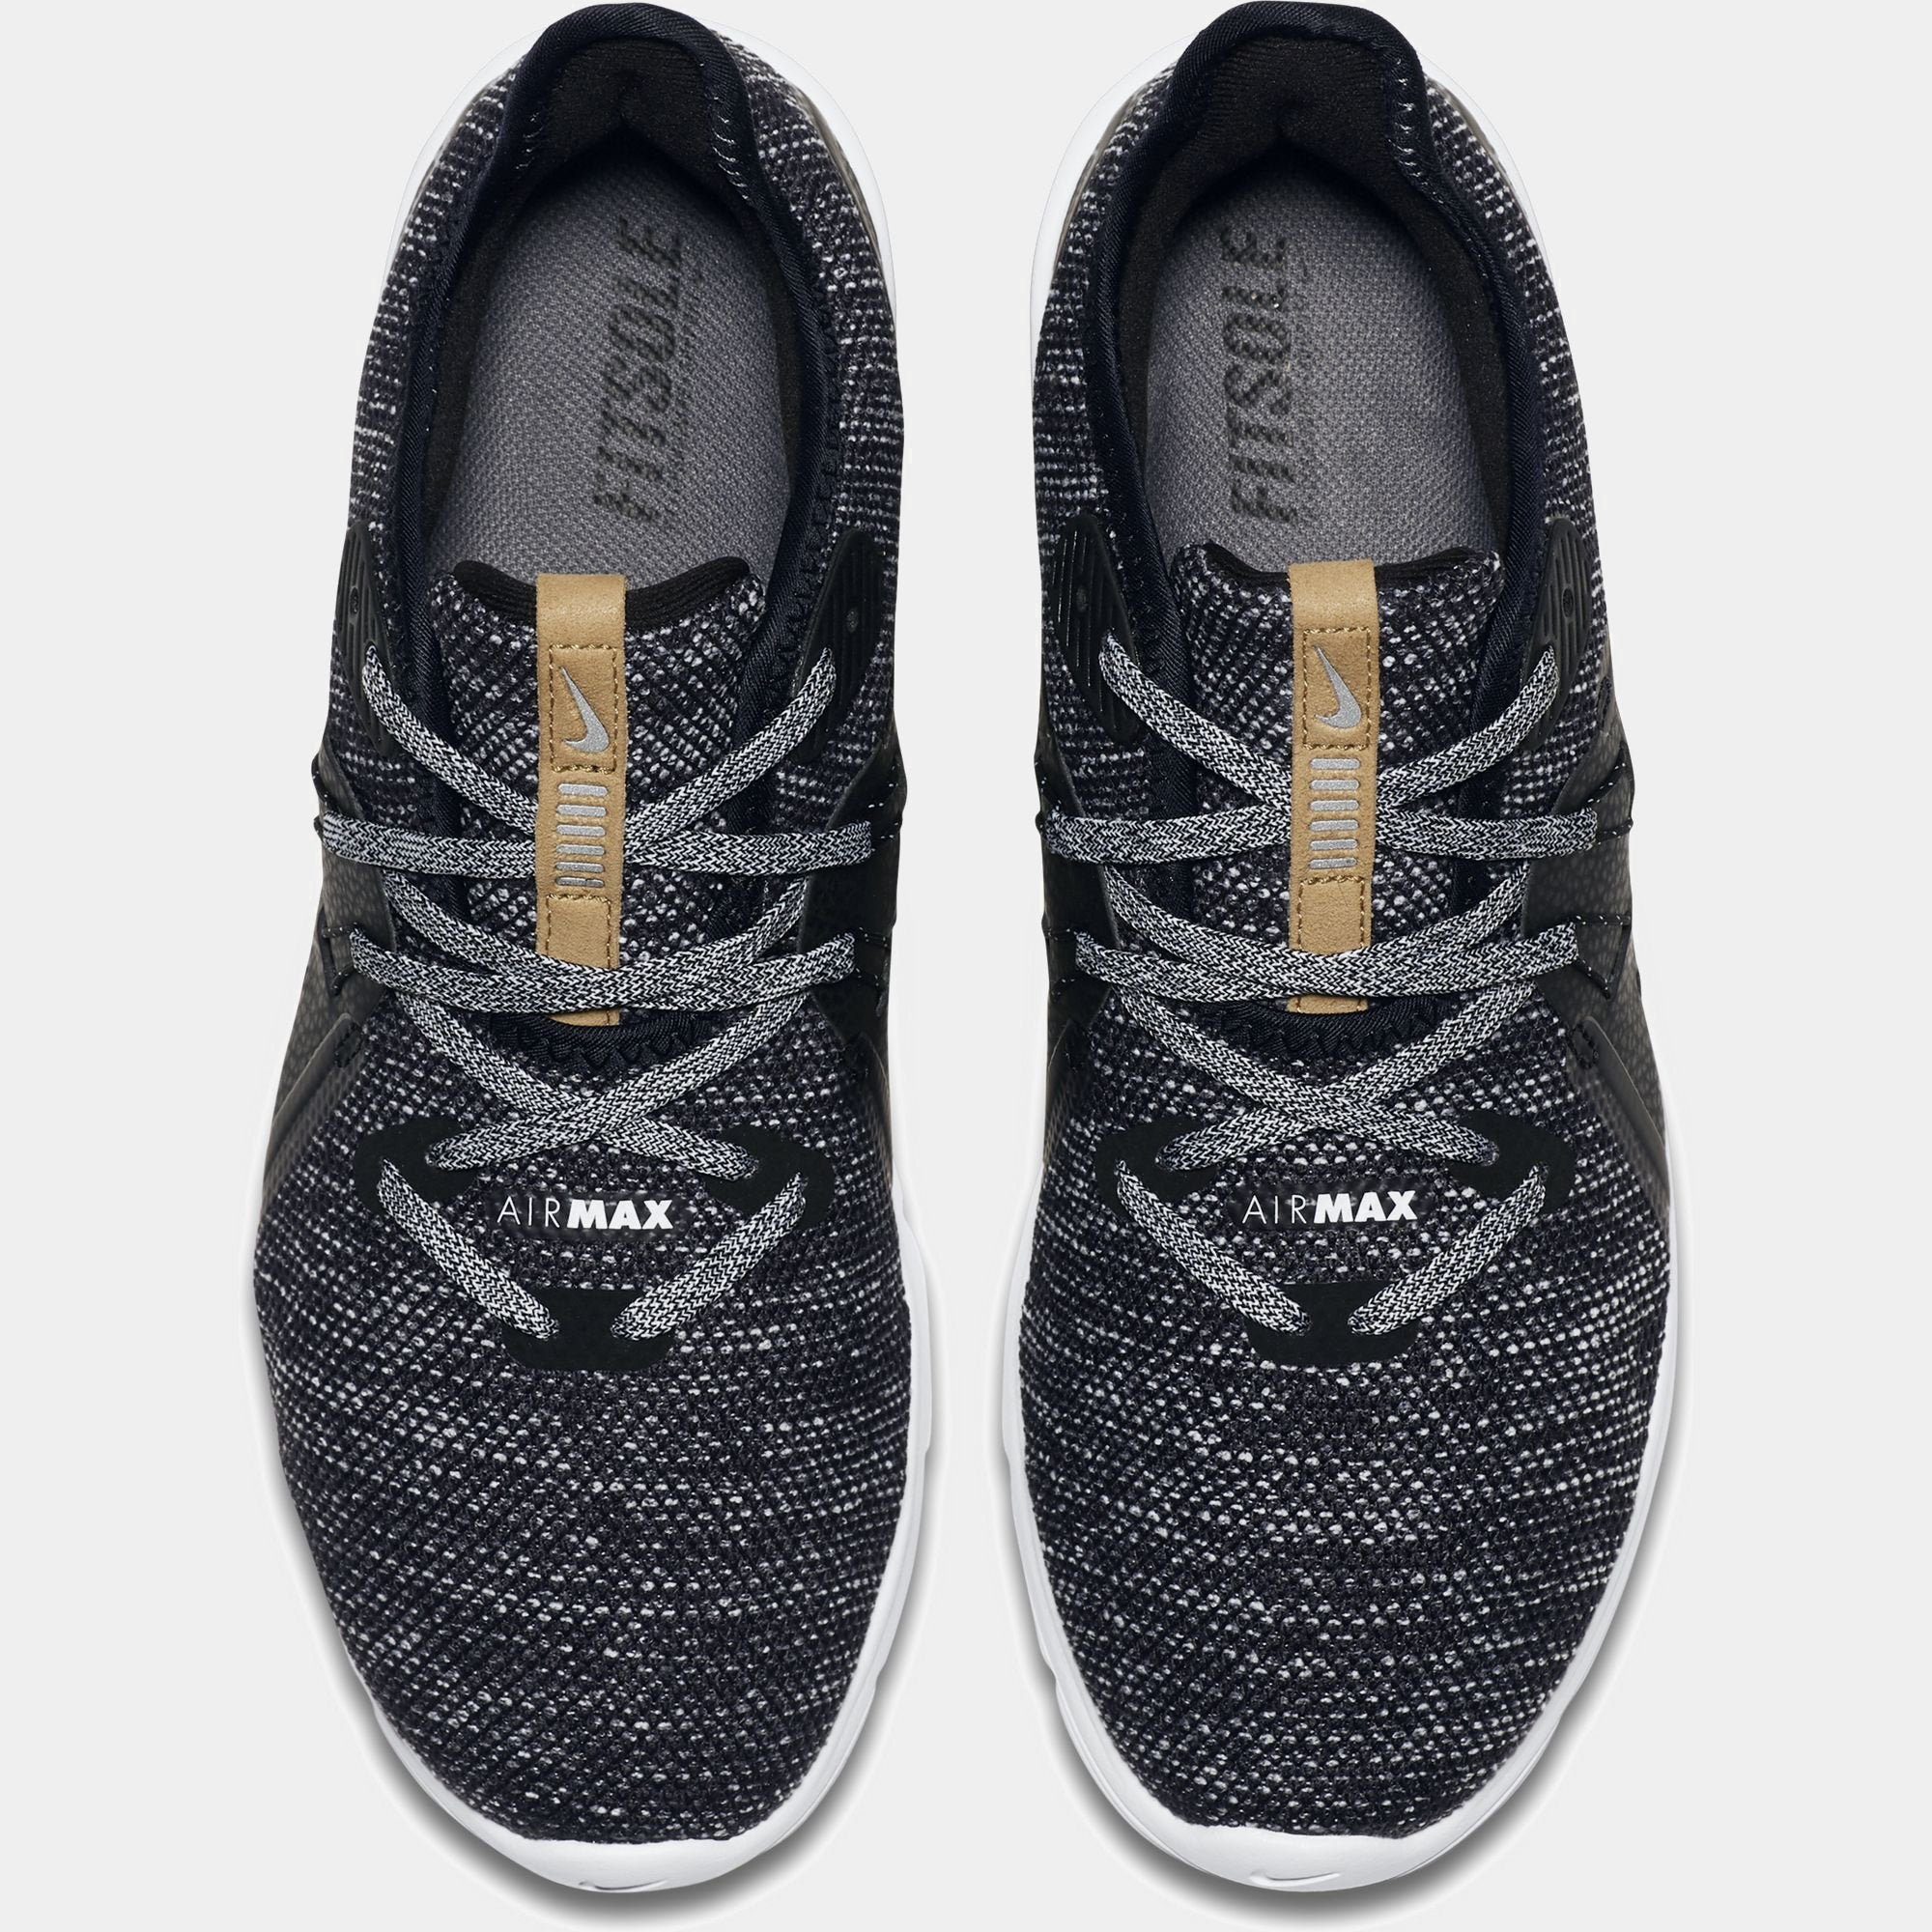 5395599d99 Home. > UK8. > Nike Air Max Sequent 3 Running Shoe